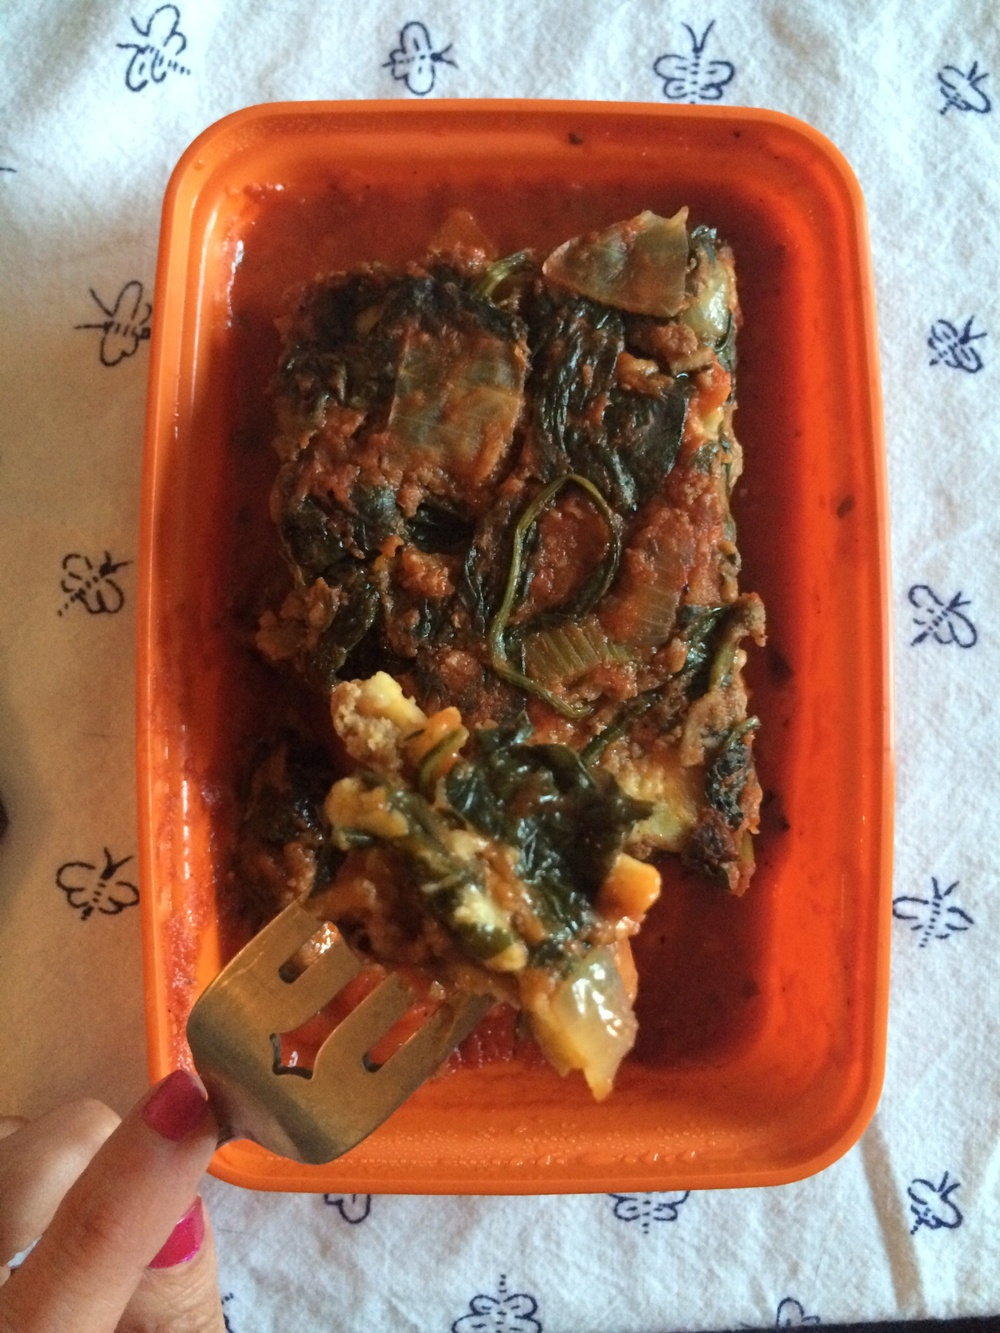 What I Ate: Dinner 8/8/15 - Lamb Lasagna (Snap Kitchen)